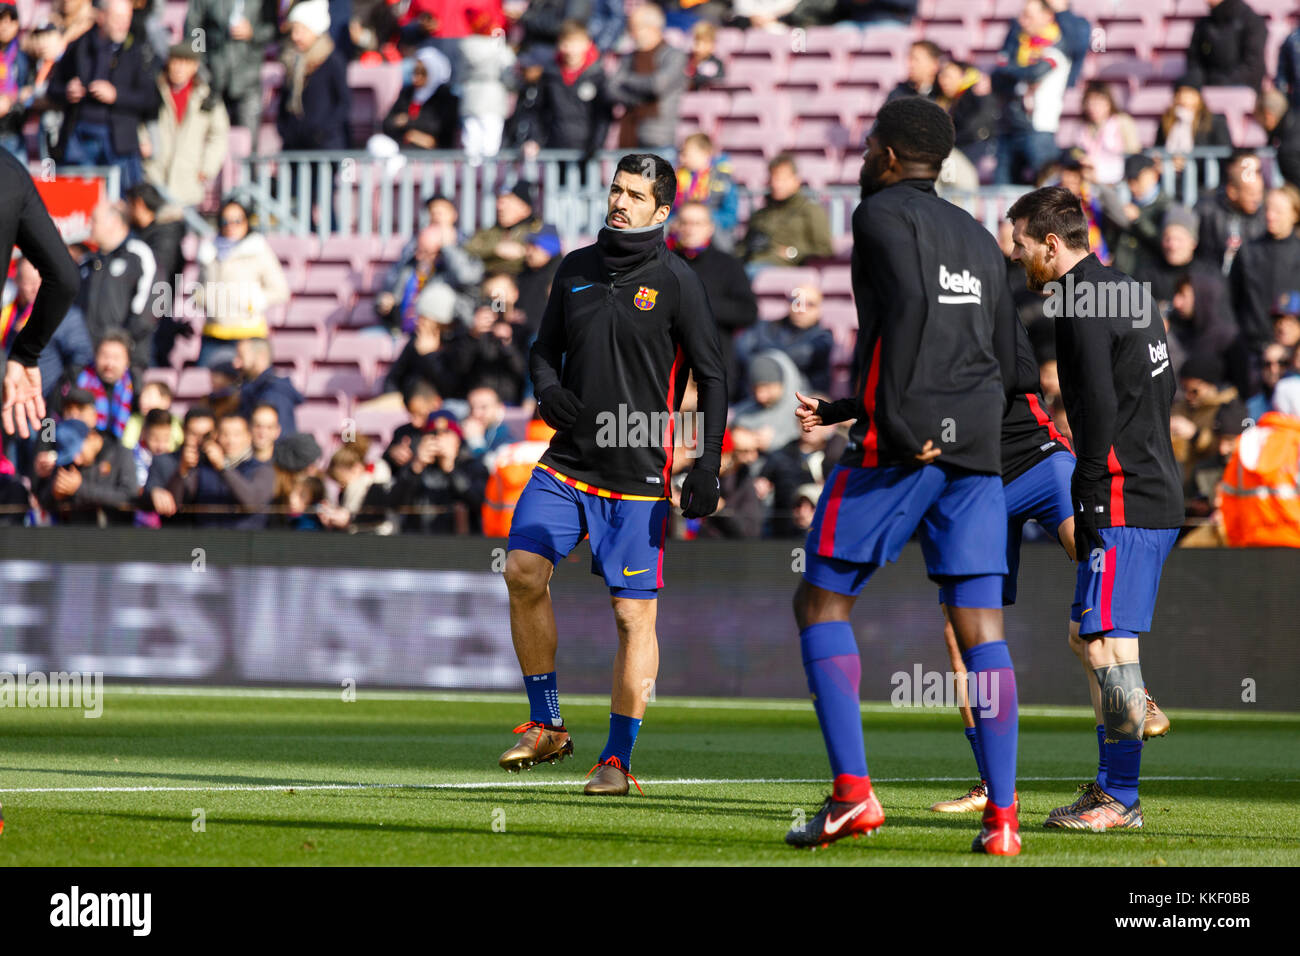 Barcelona, Spain. 02nd Dec, 2017. Training before the match of the La Liga match between FC Barcelona and RC Celta - Stock Image